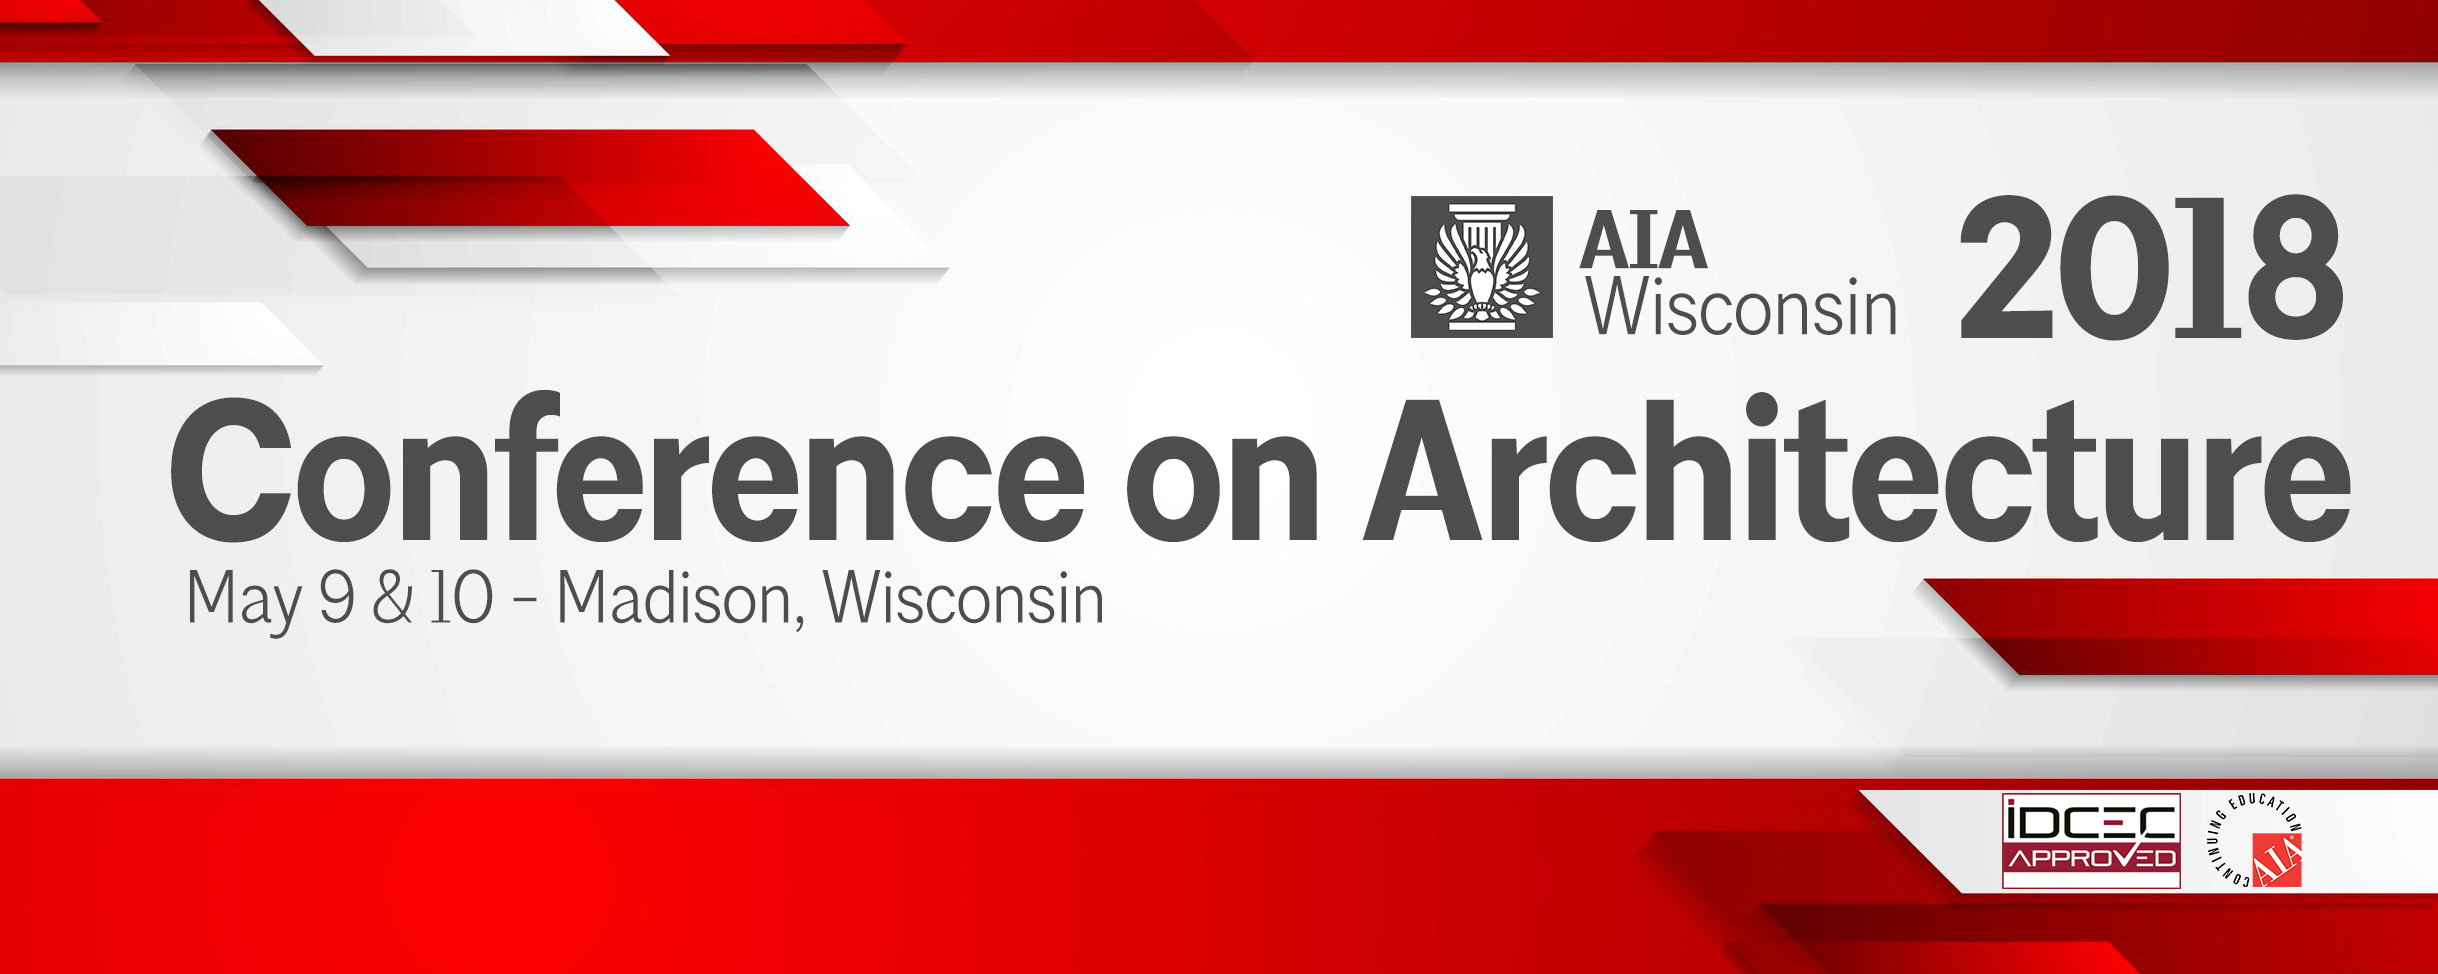 AIA Wisconsin 2018 Conference on Architecture